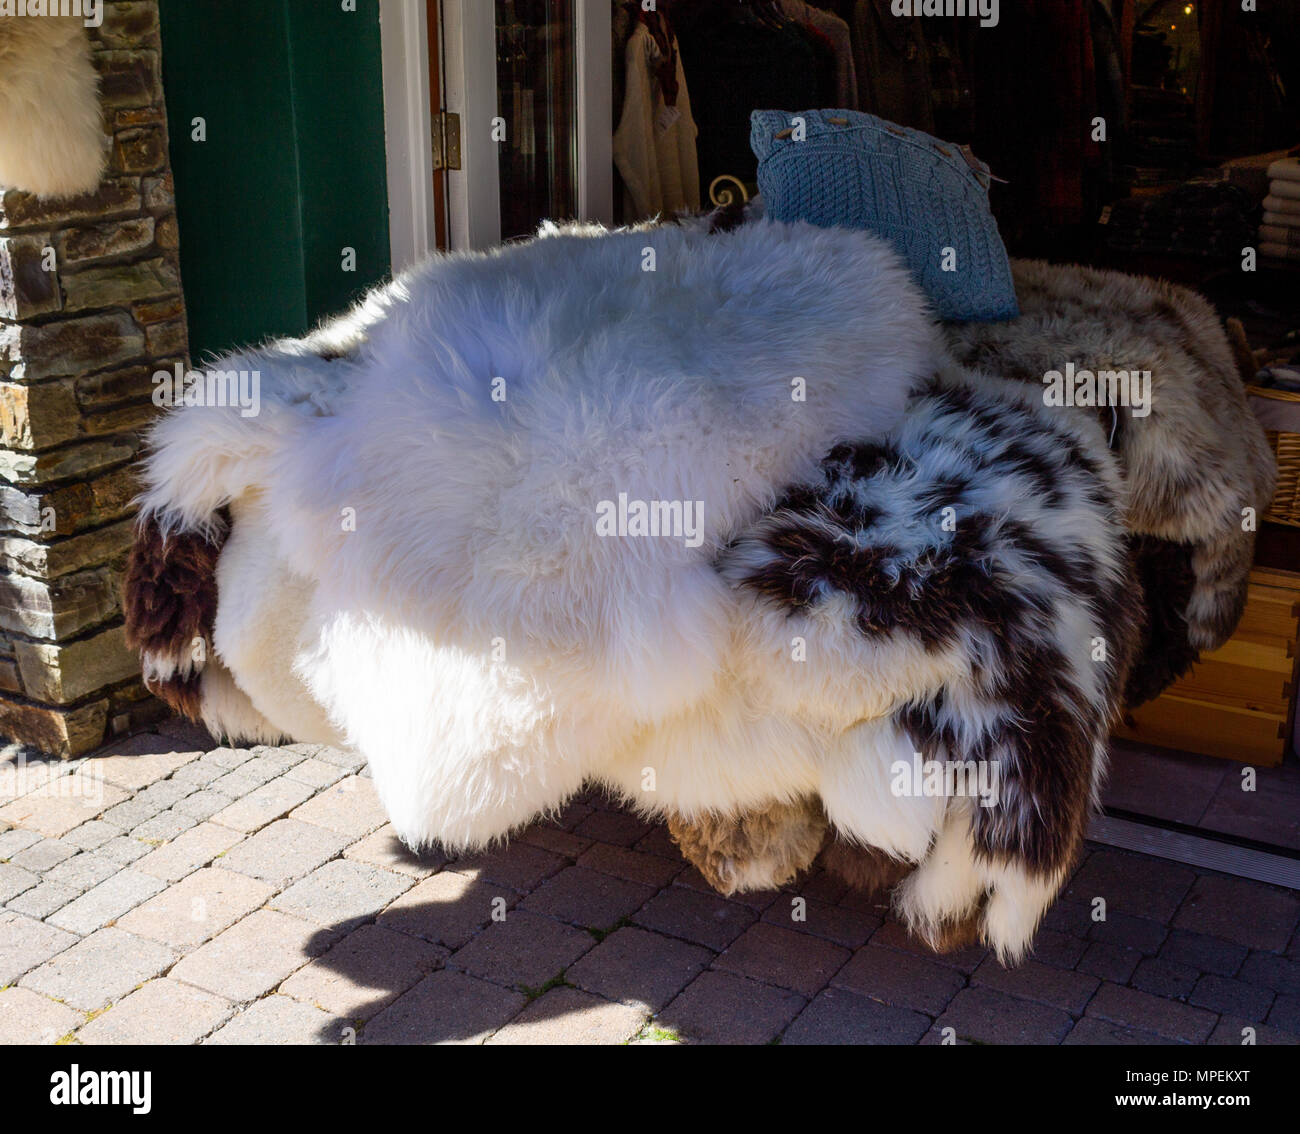 sheepskin rugs of various colours for sale outside a tourist shop in glengariff , Ireland. - Stock Image